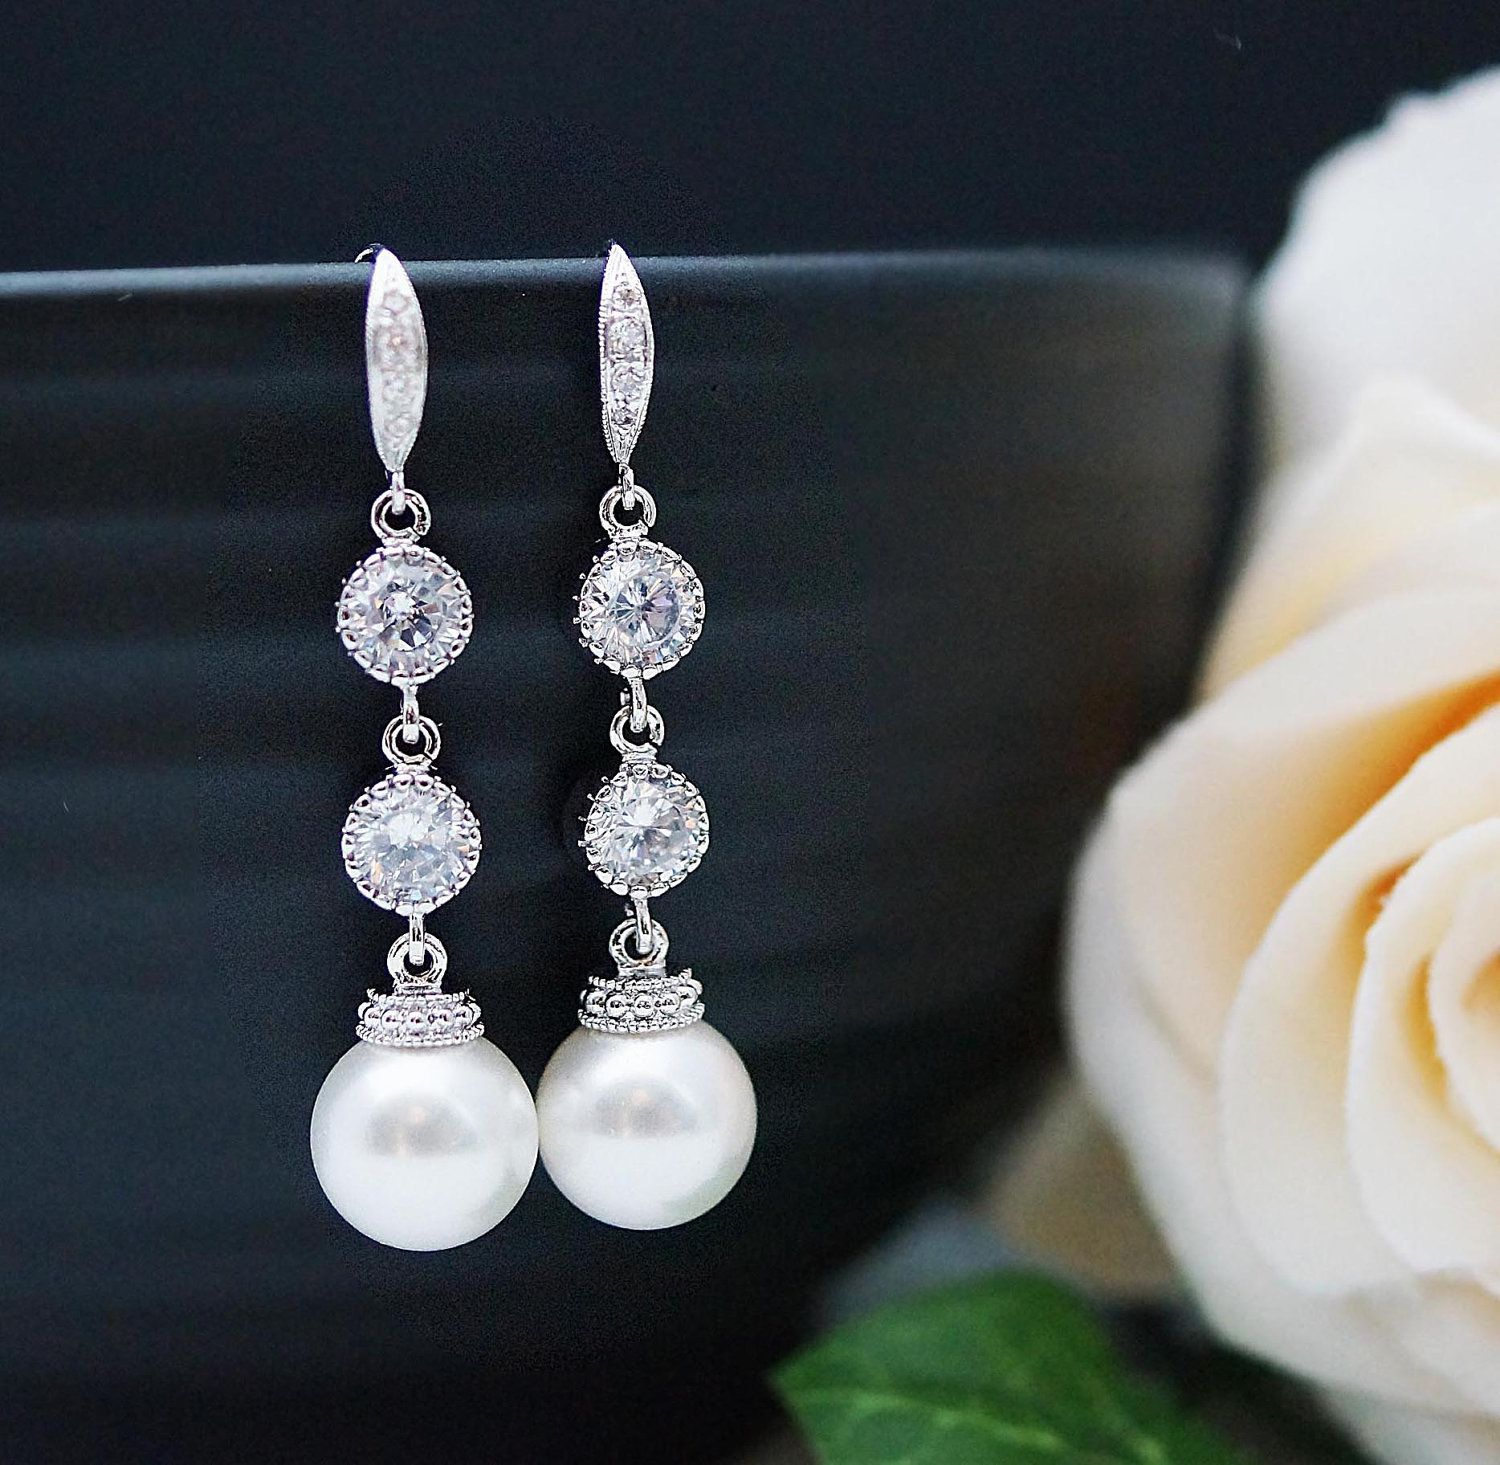 Wedding Bridal Jewelry Bridal Earrings Bridesmaid Dangle Earrings Gifts Crystal White Swarovski Pearls and Cubic Zirconia Connectors. $36.80, via Etsy.